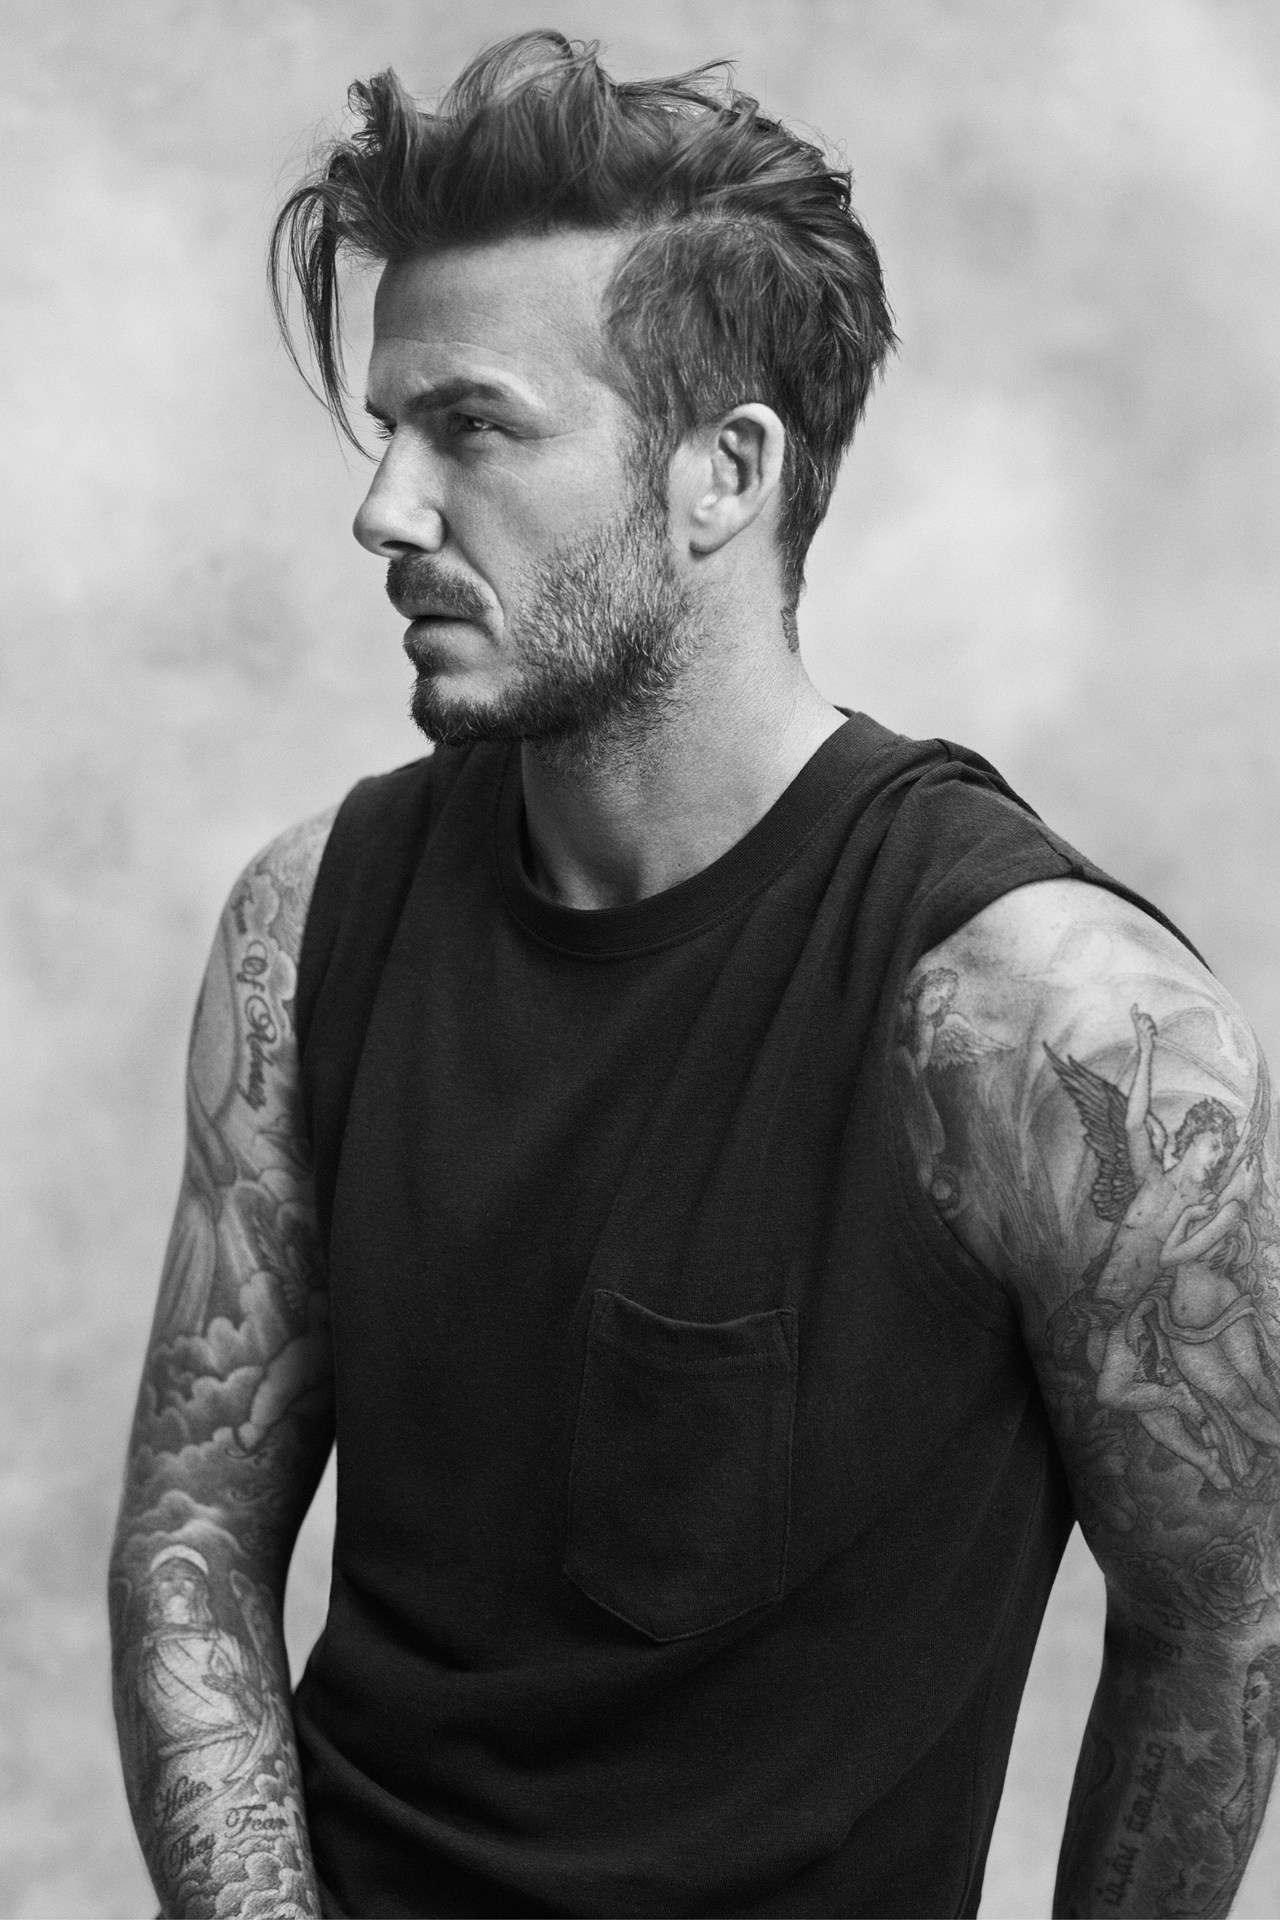 David-Beckham-HM 3-Vogue 20Jan15 pr_b_1280x1920